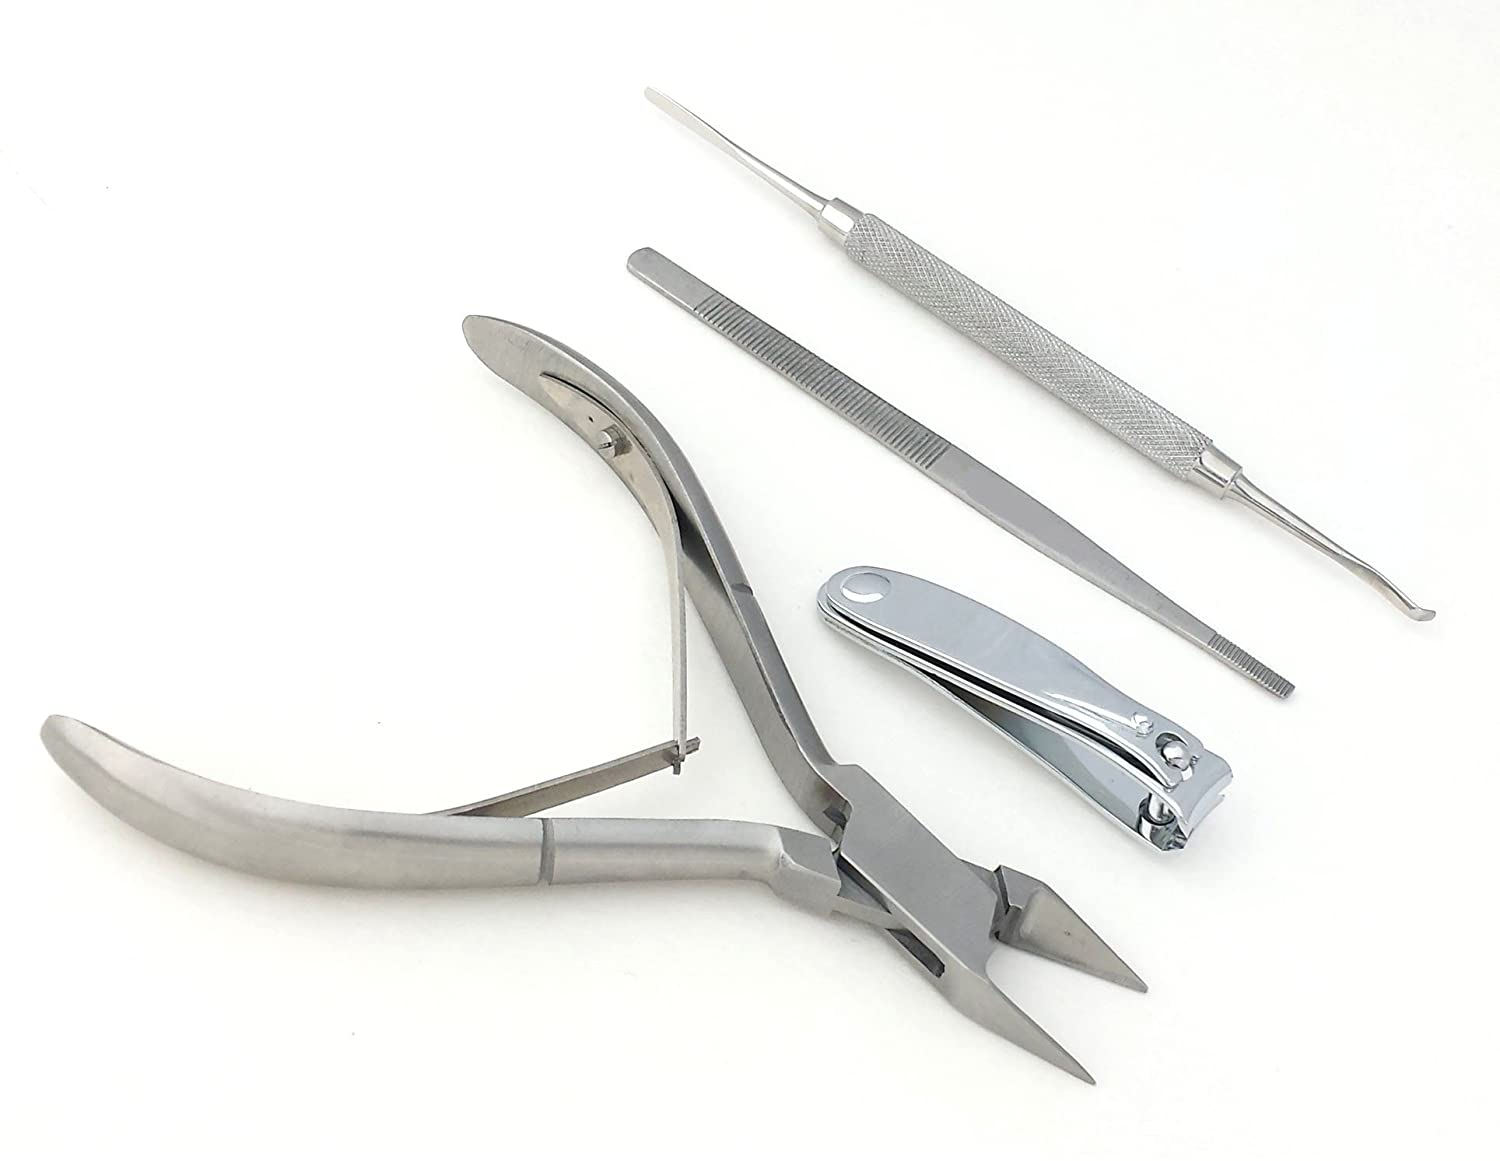 Ingrown Toe Nail Nipper, Lifter, Cutter and File Double Ended Sided 4pcs Set Haryali ingrnset4